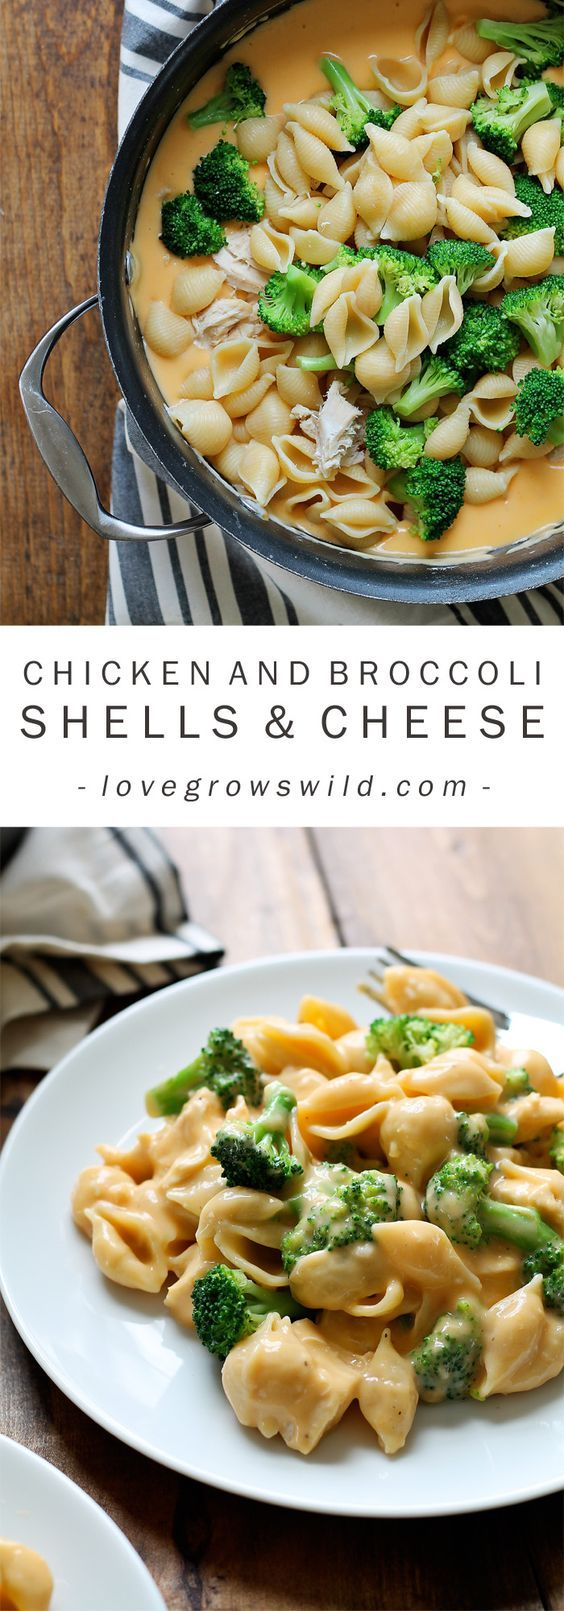 """Chicken and Broccoli Shells and Cheese - """"Love Grows Wild"""" on FoodBlogs.com"""